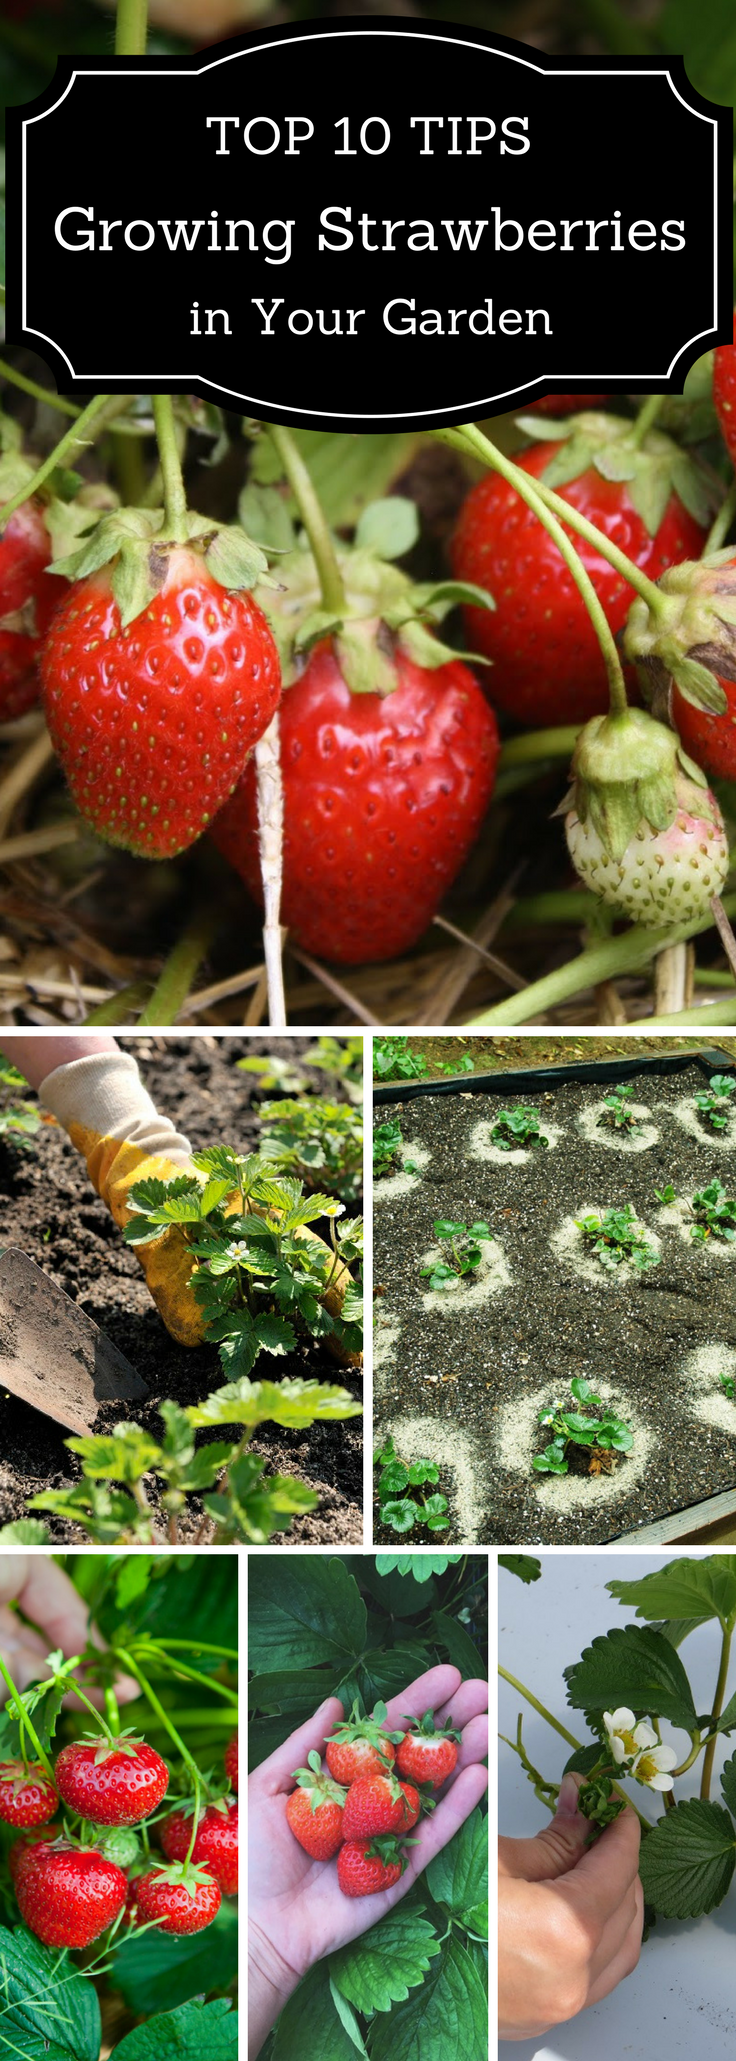 Top 10 tips on growing strawberries in your garden for Jardineria al aire libre casa pendiente